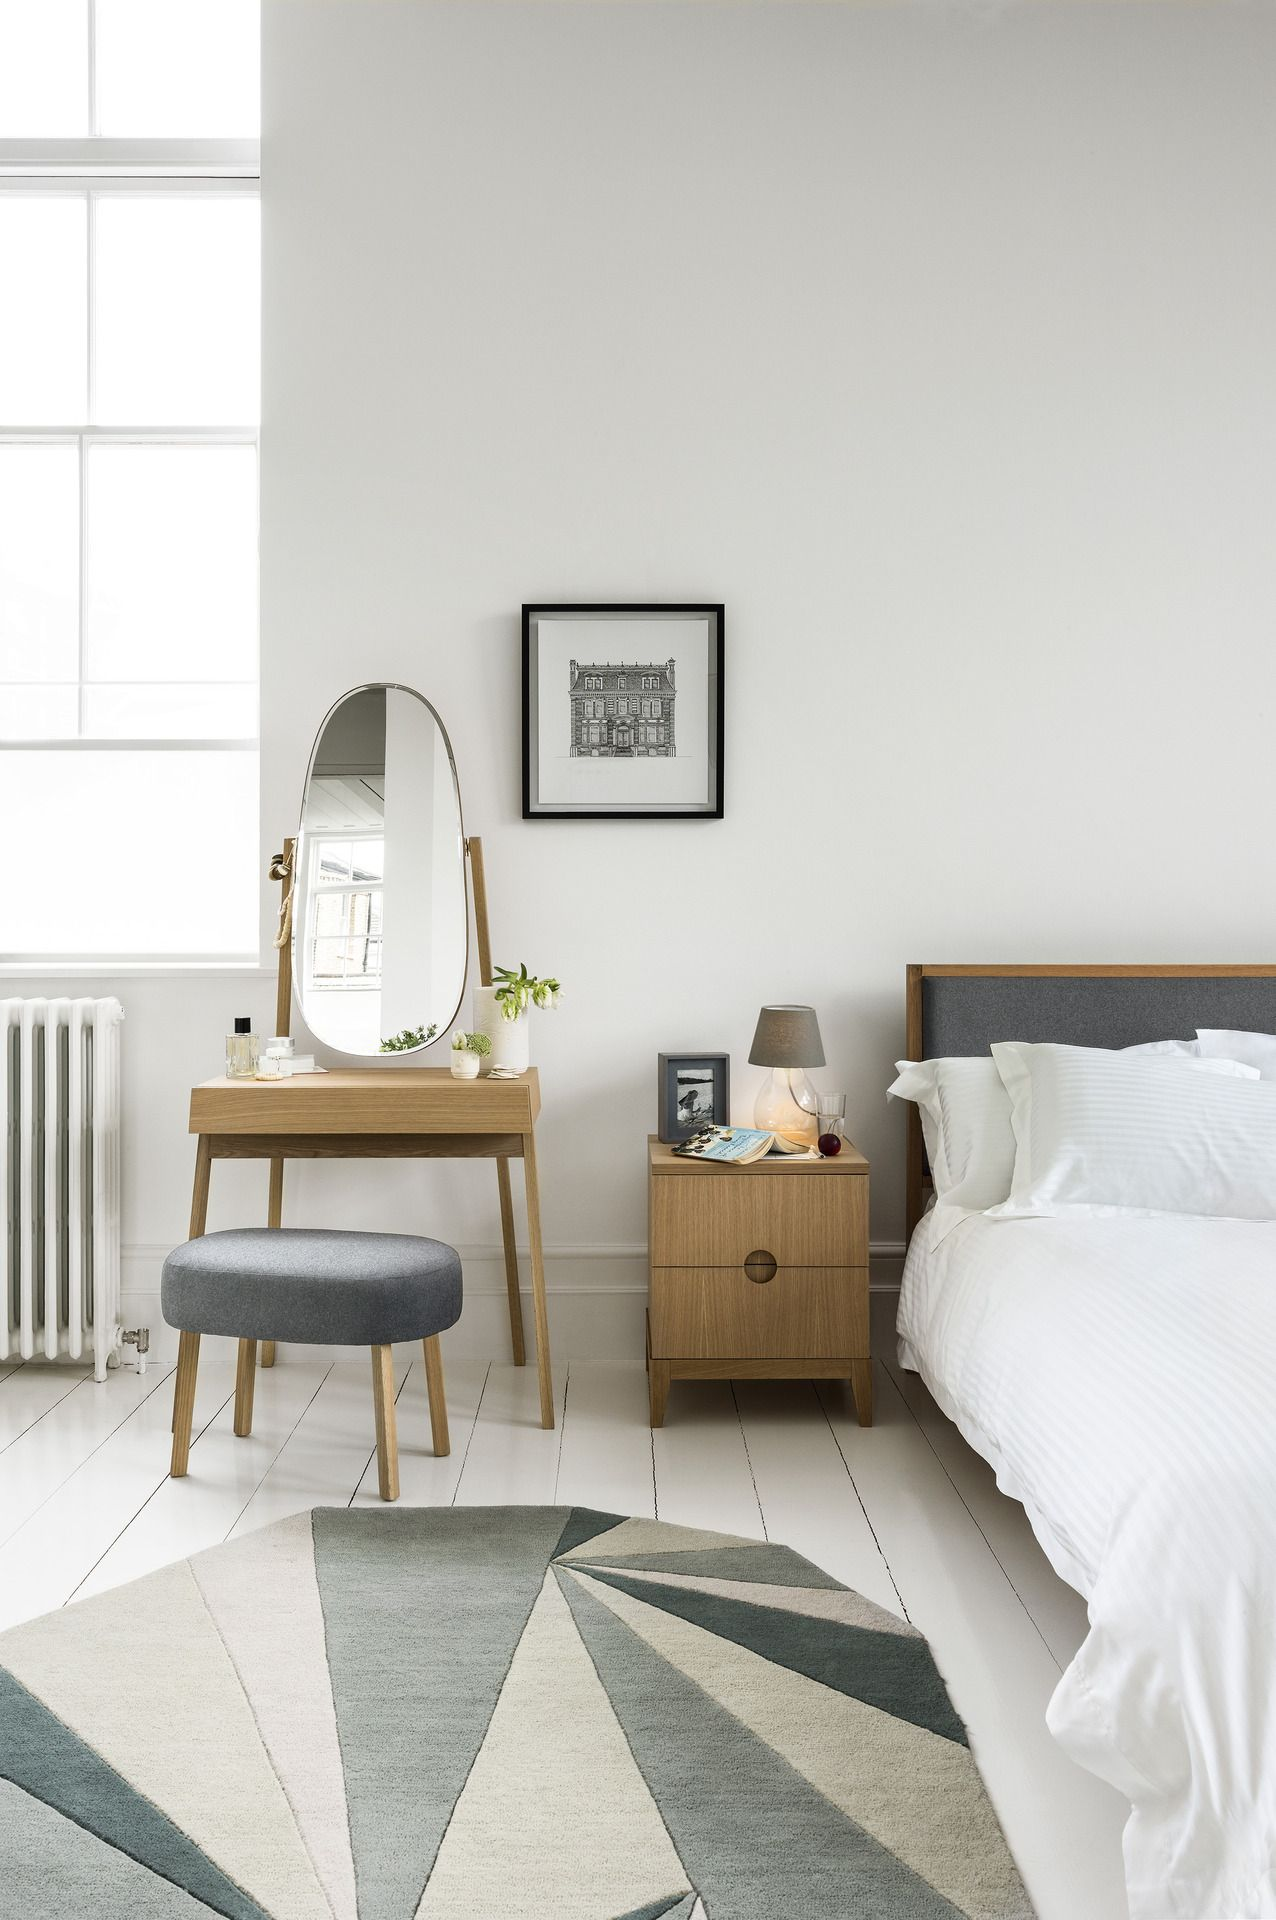 Neues schlafzimmer interieur calm bedroom with grey tones keeps the space clean but warm love